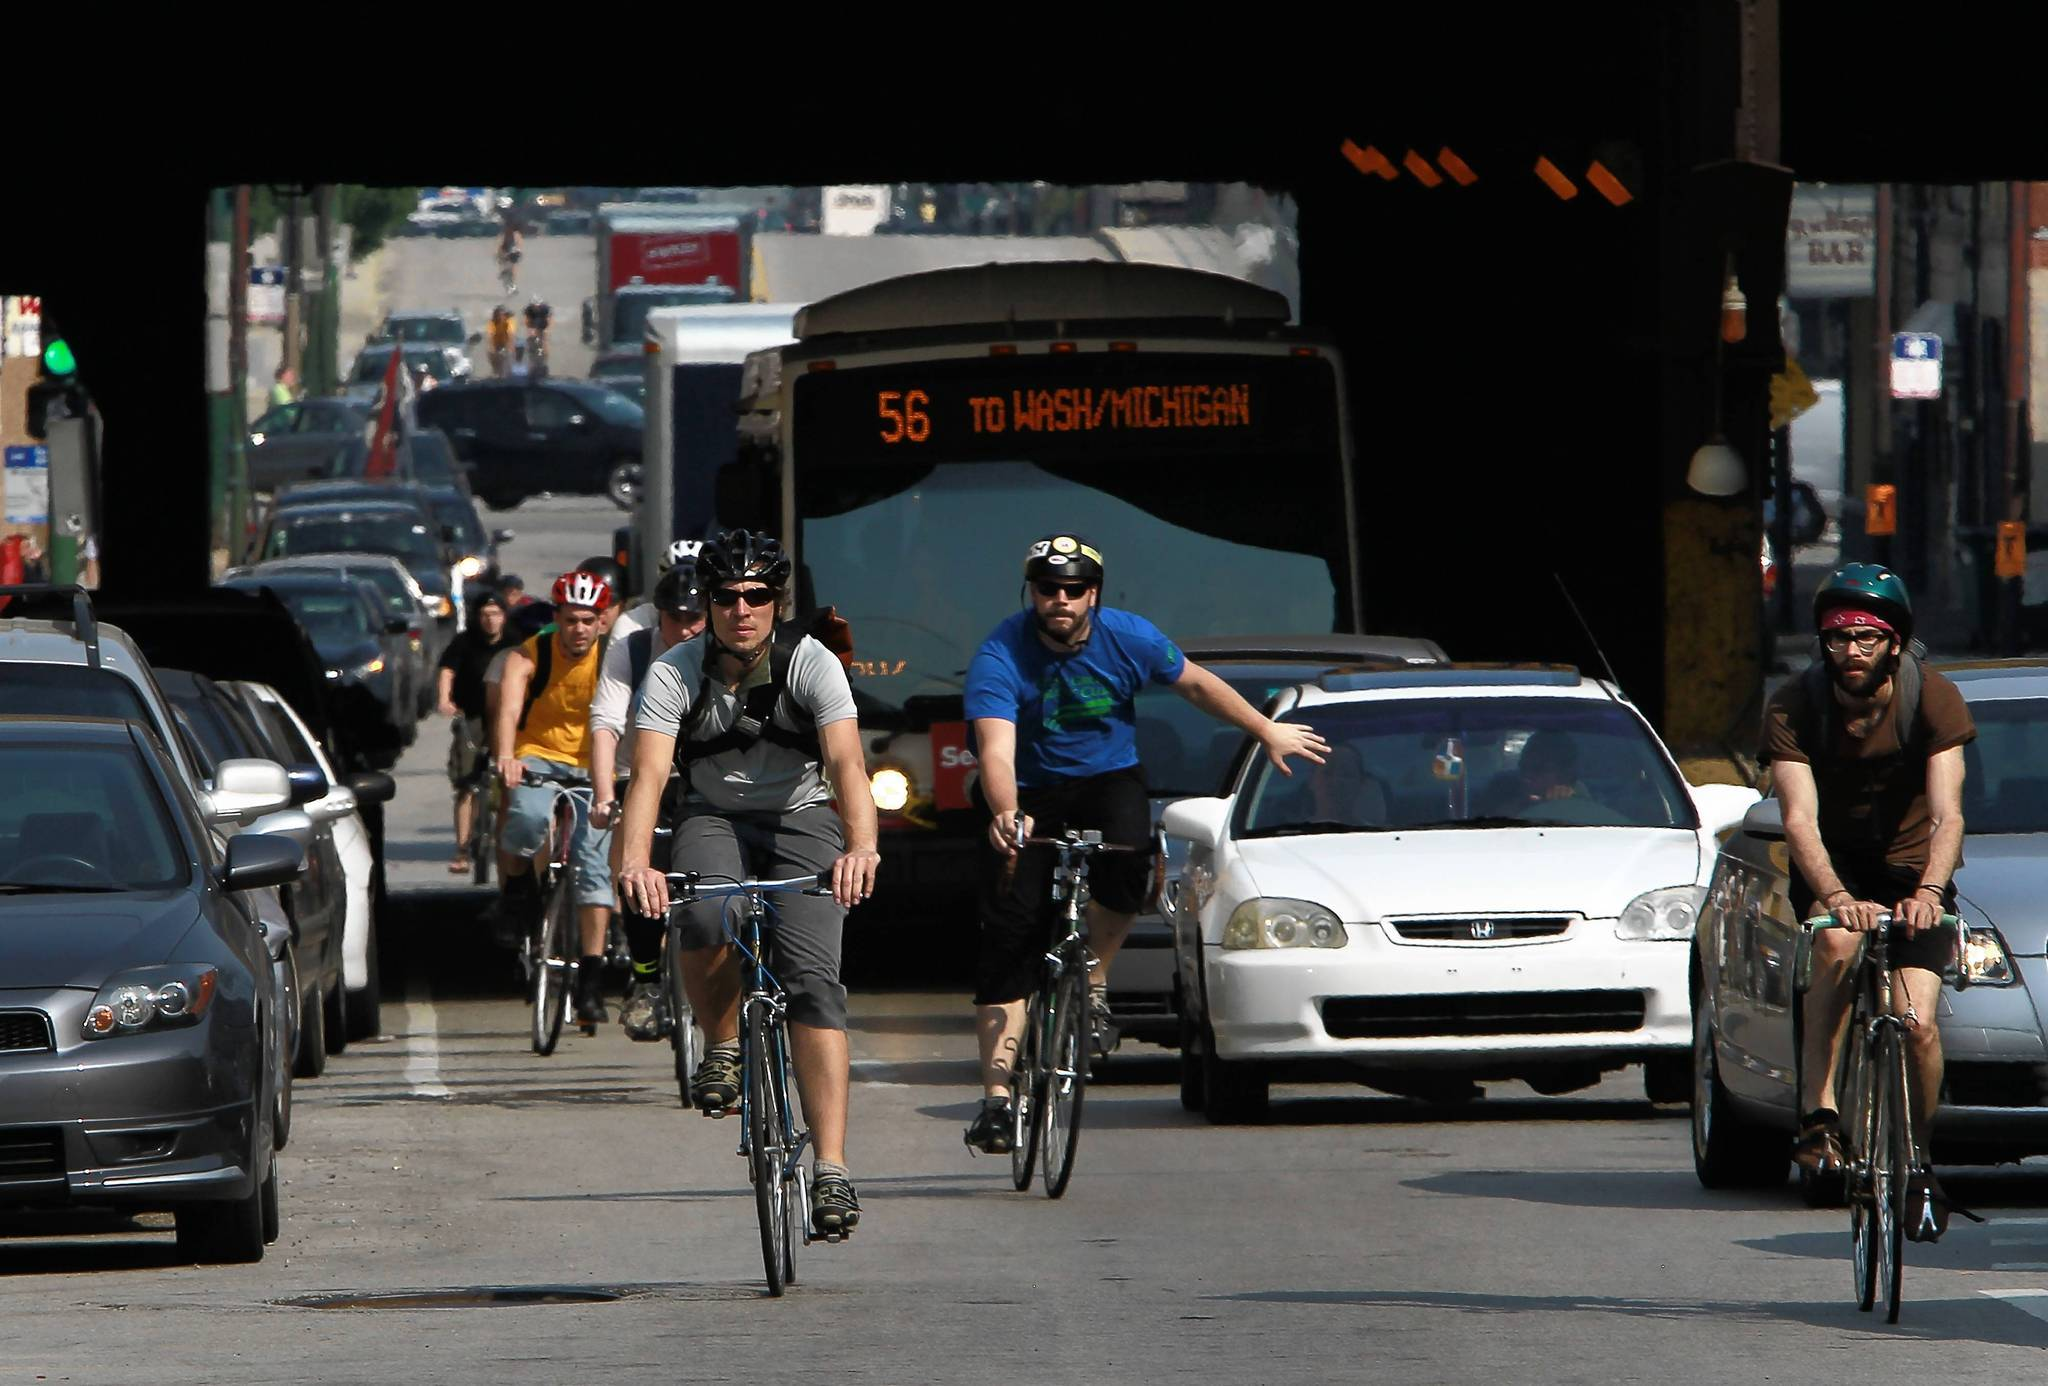 Cook County is creating a transportation plan over the next 18 months, setting priorities for projects from roads to bike paths.